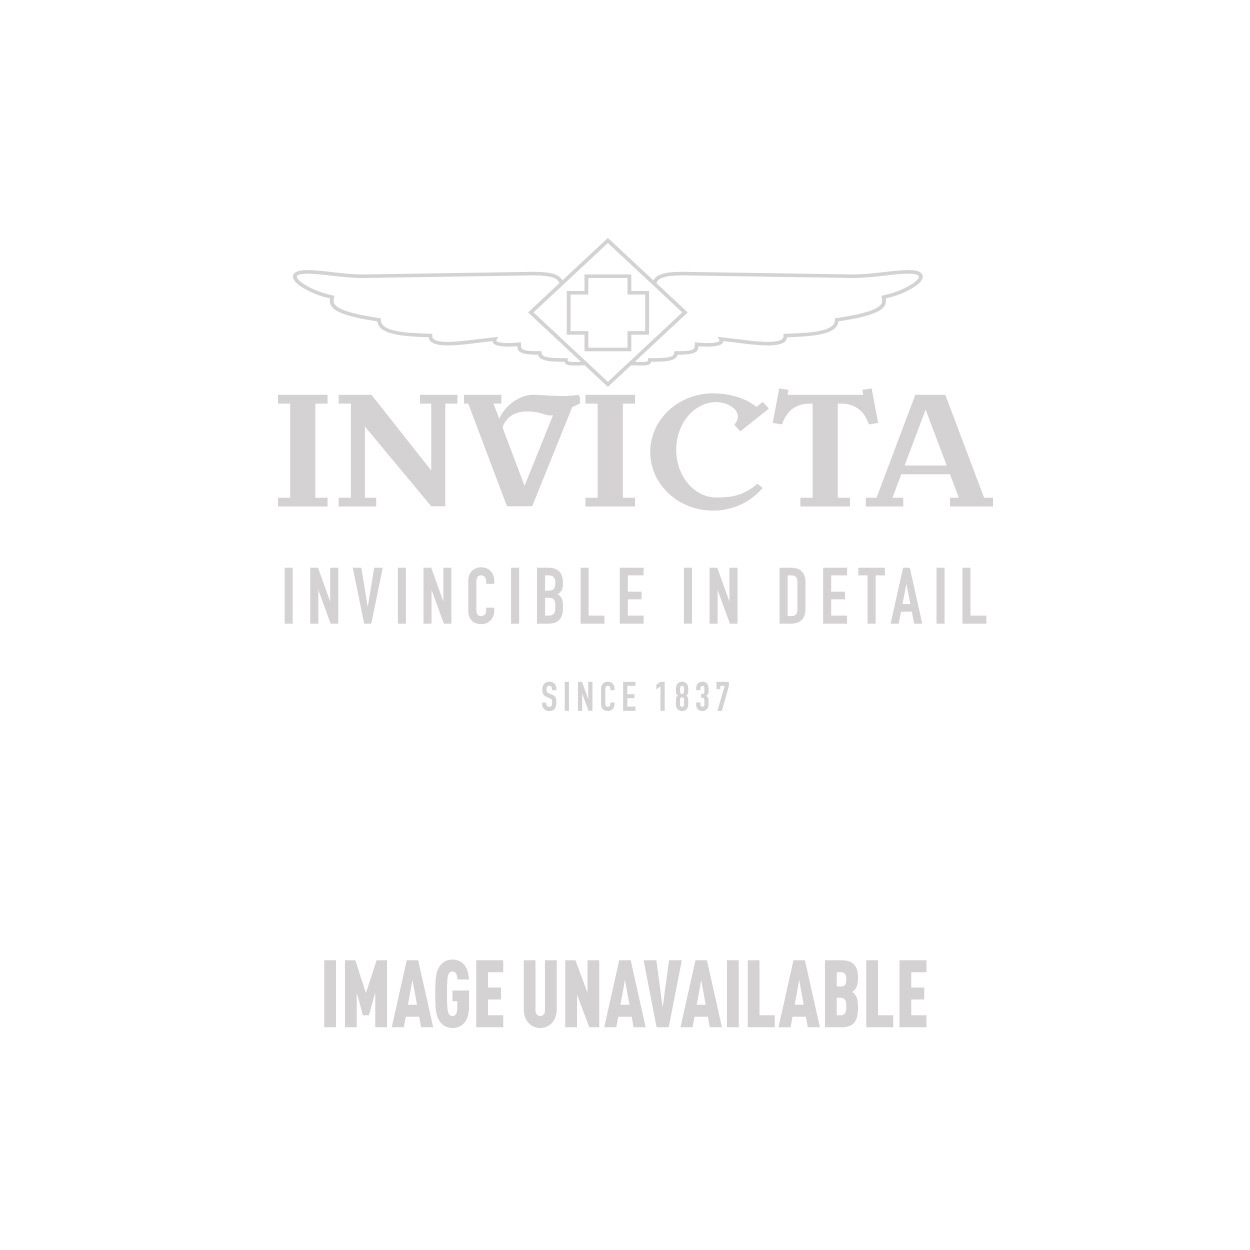 Invicta Angel Swiss Movement Quartz Watch - Rose Gold case with Rose Gold tone Stainless Steel band - Model 16892